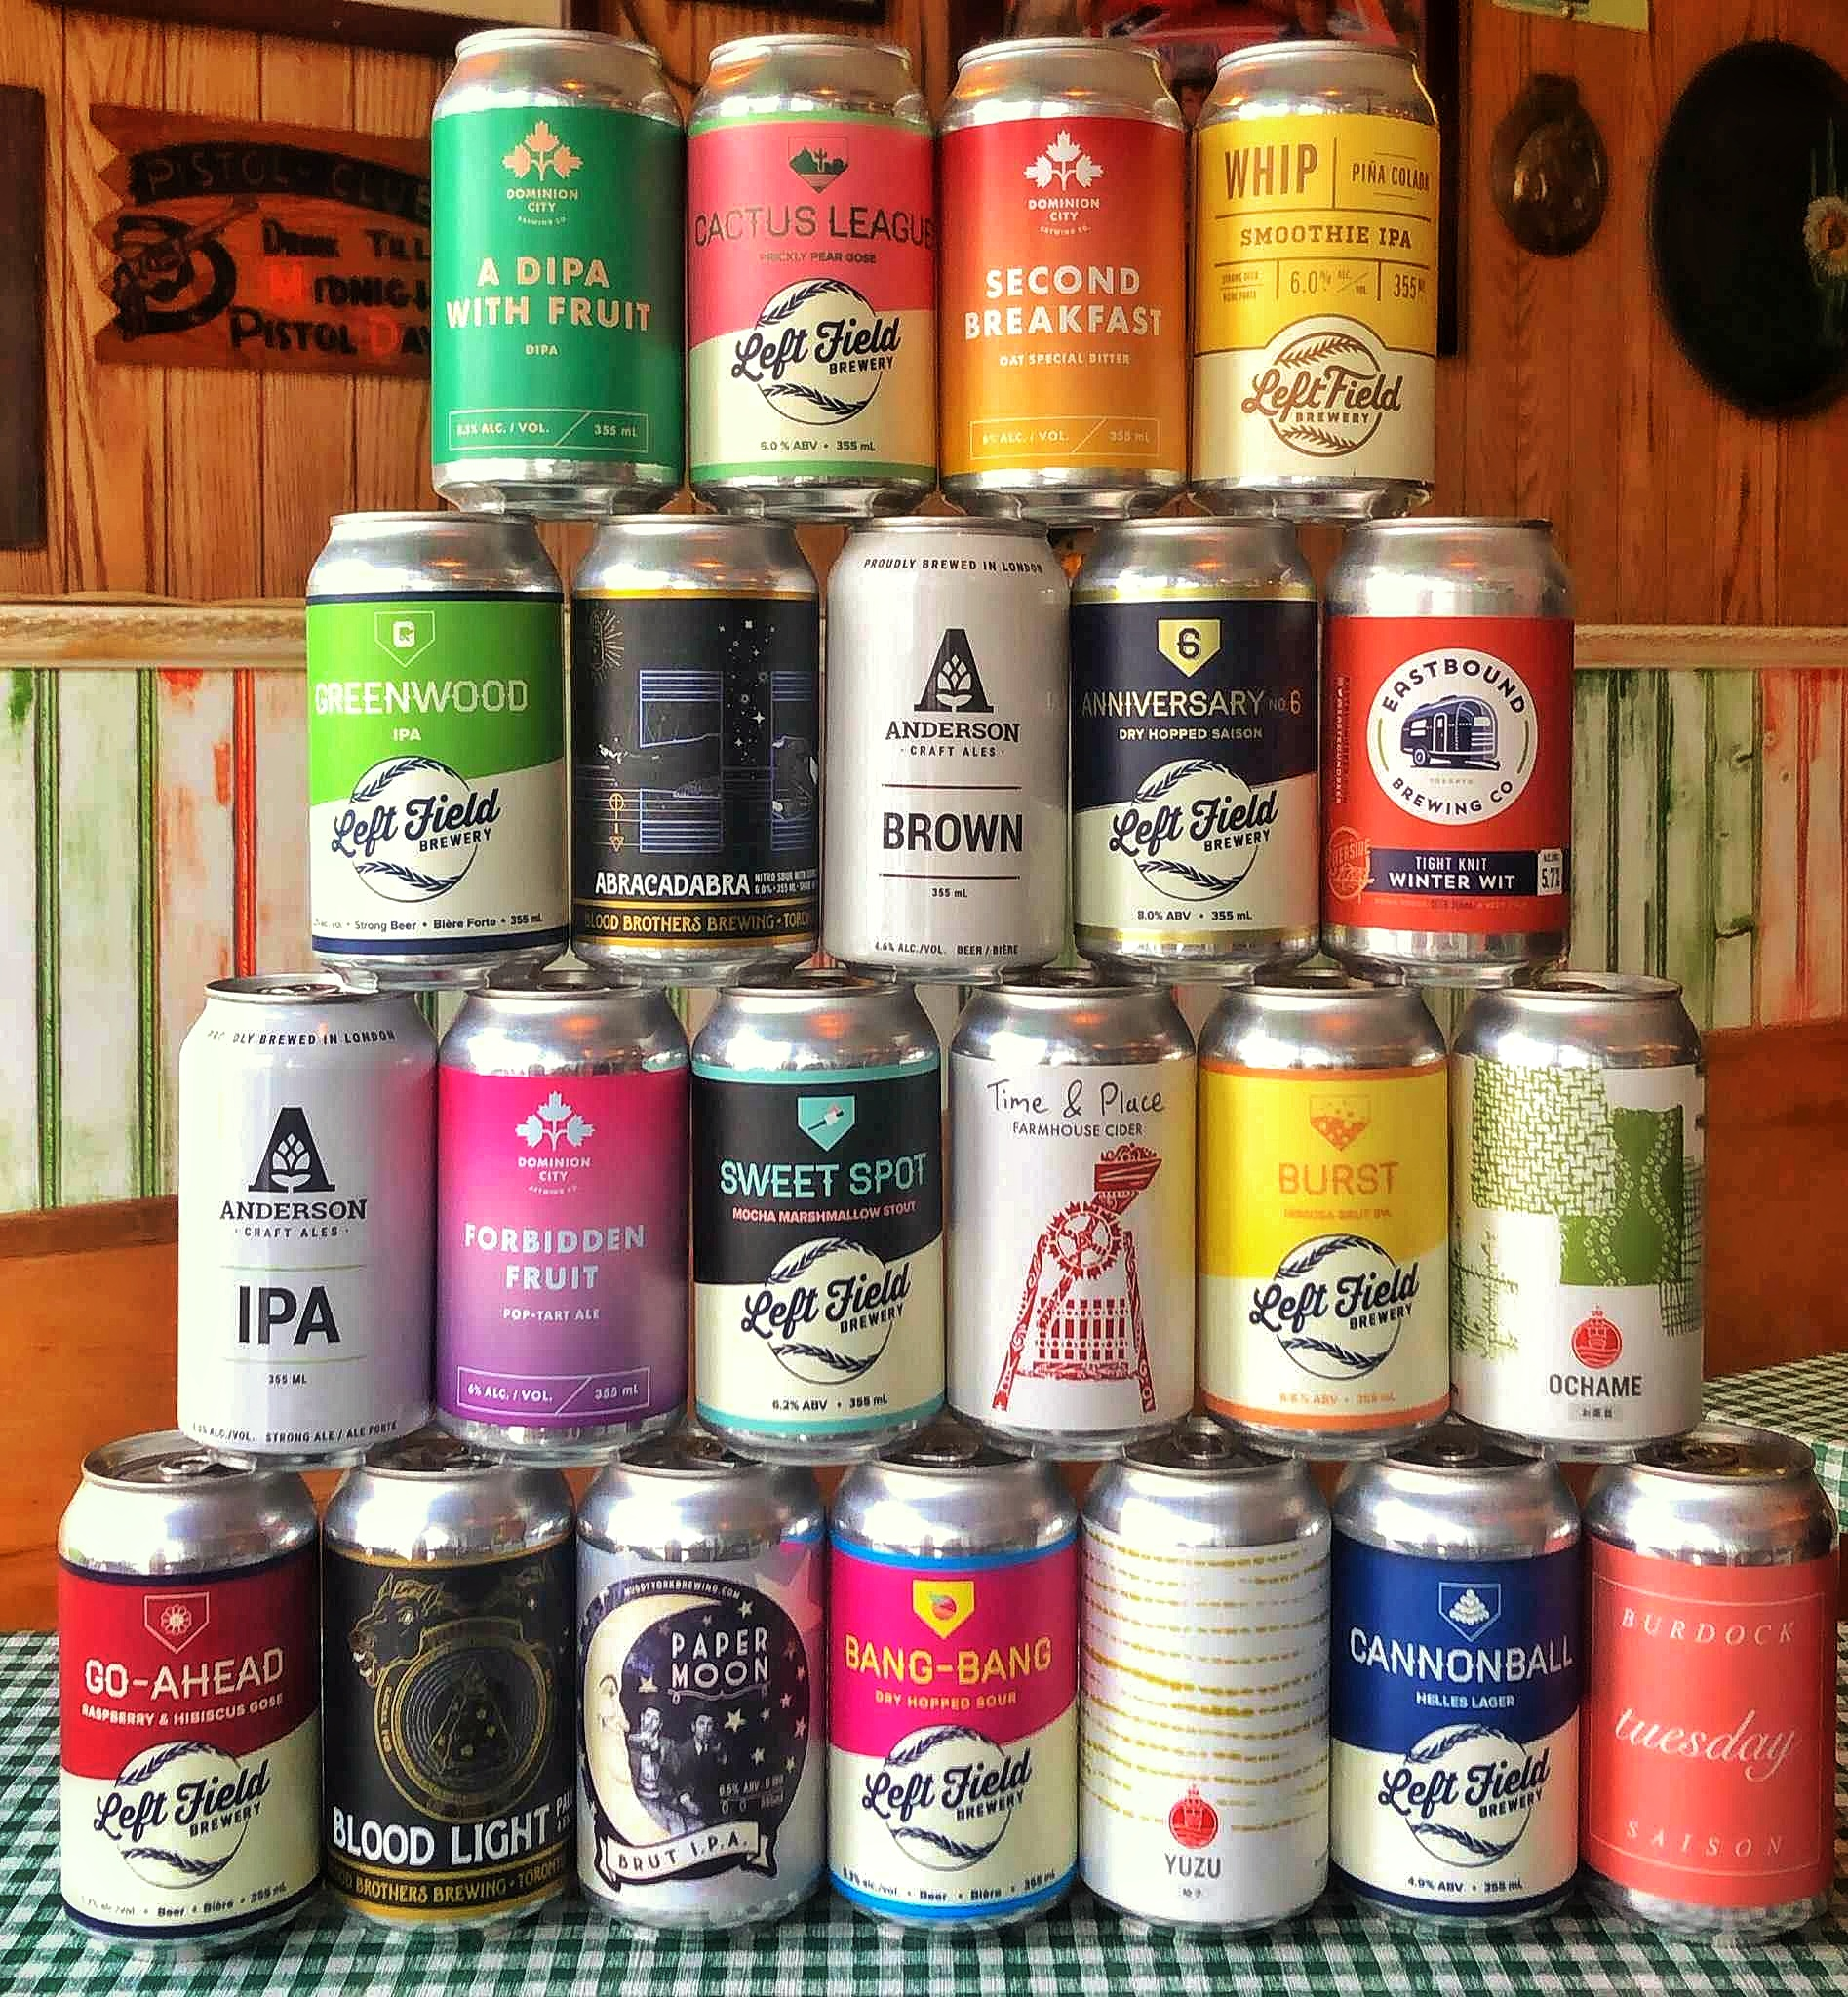 We are always bringing in new and exciting short cans from across the province of OntariO and beyond. cHECK ouT OUR MENU FROM uNTAPPD DOWN BELOW, Hit Refresh to see the latest Cans in Stock - Menu curated by @BeerGirlCA